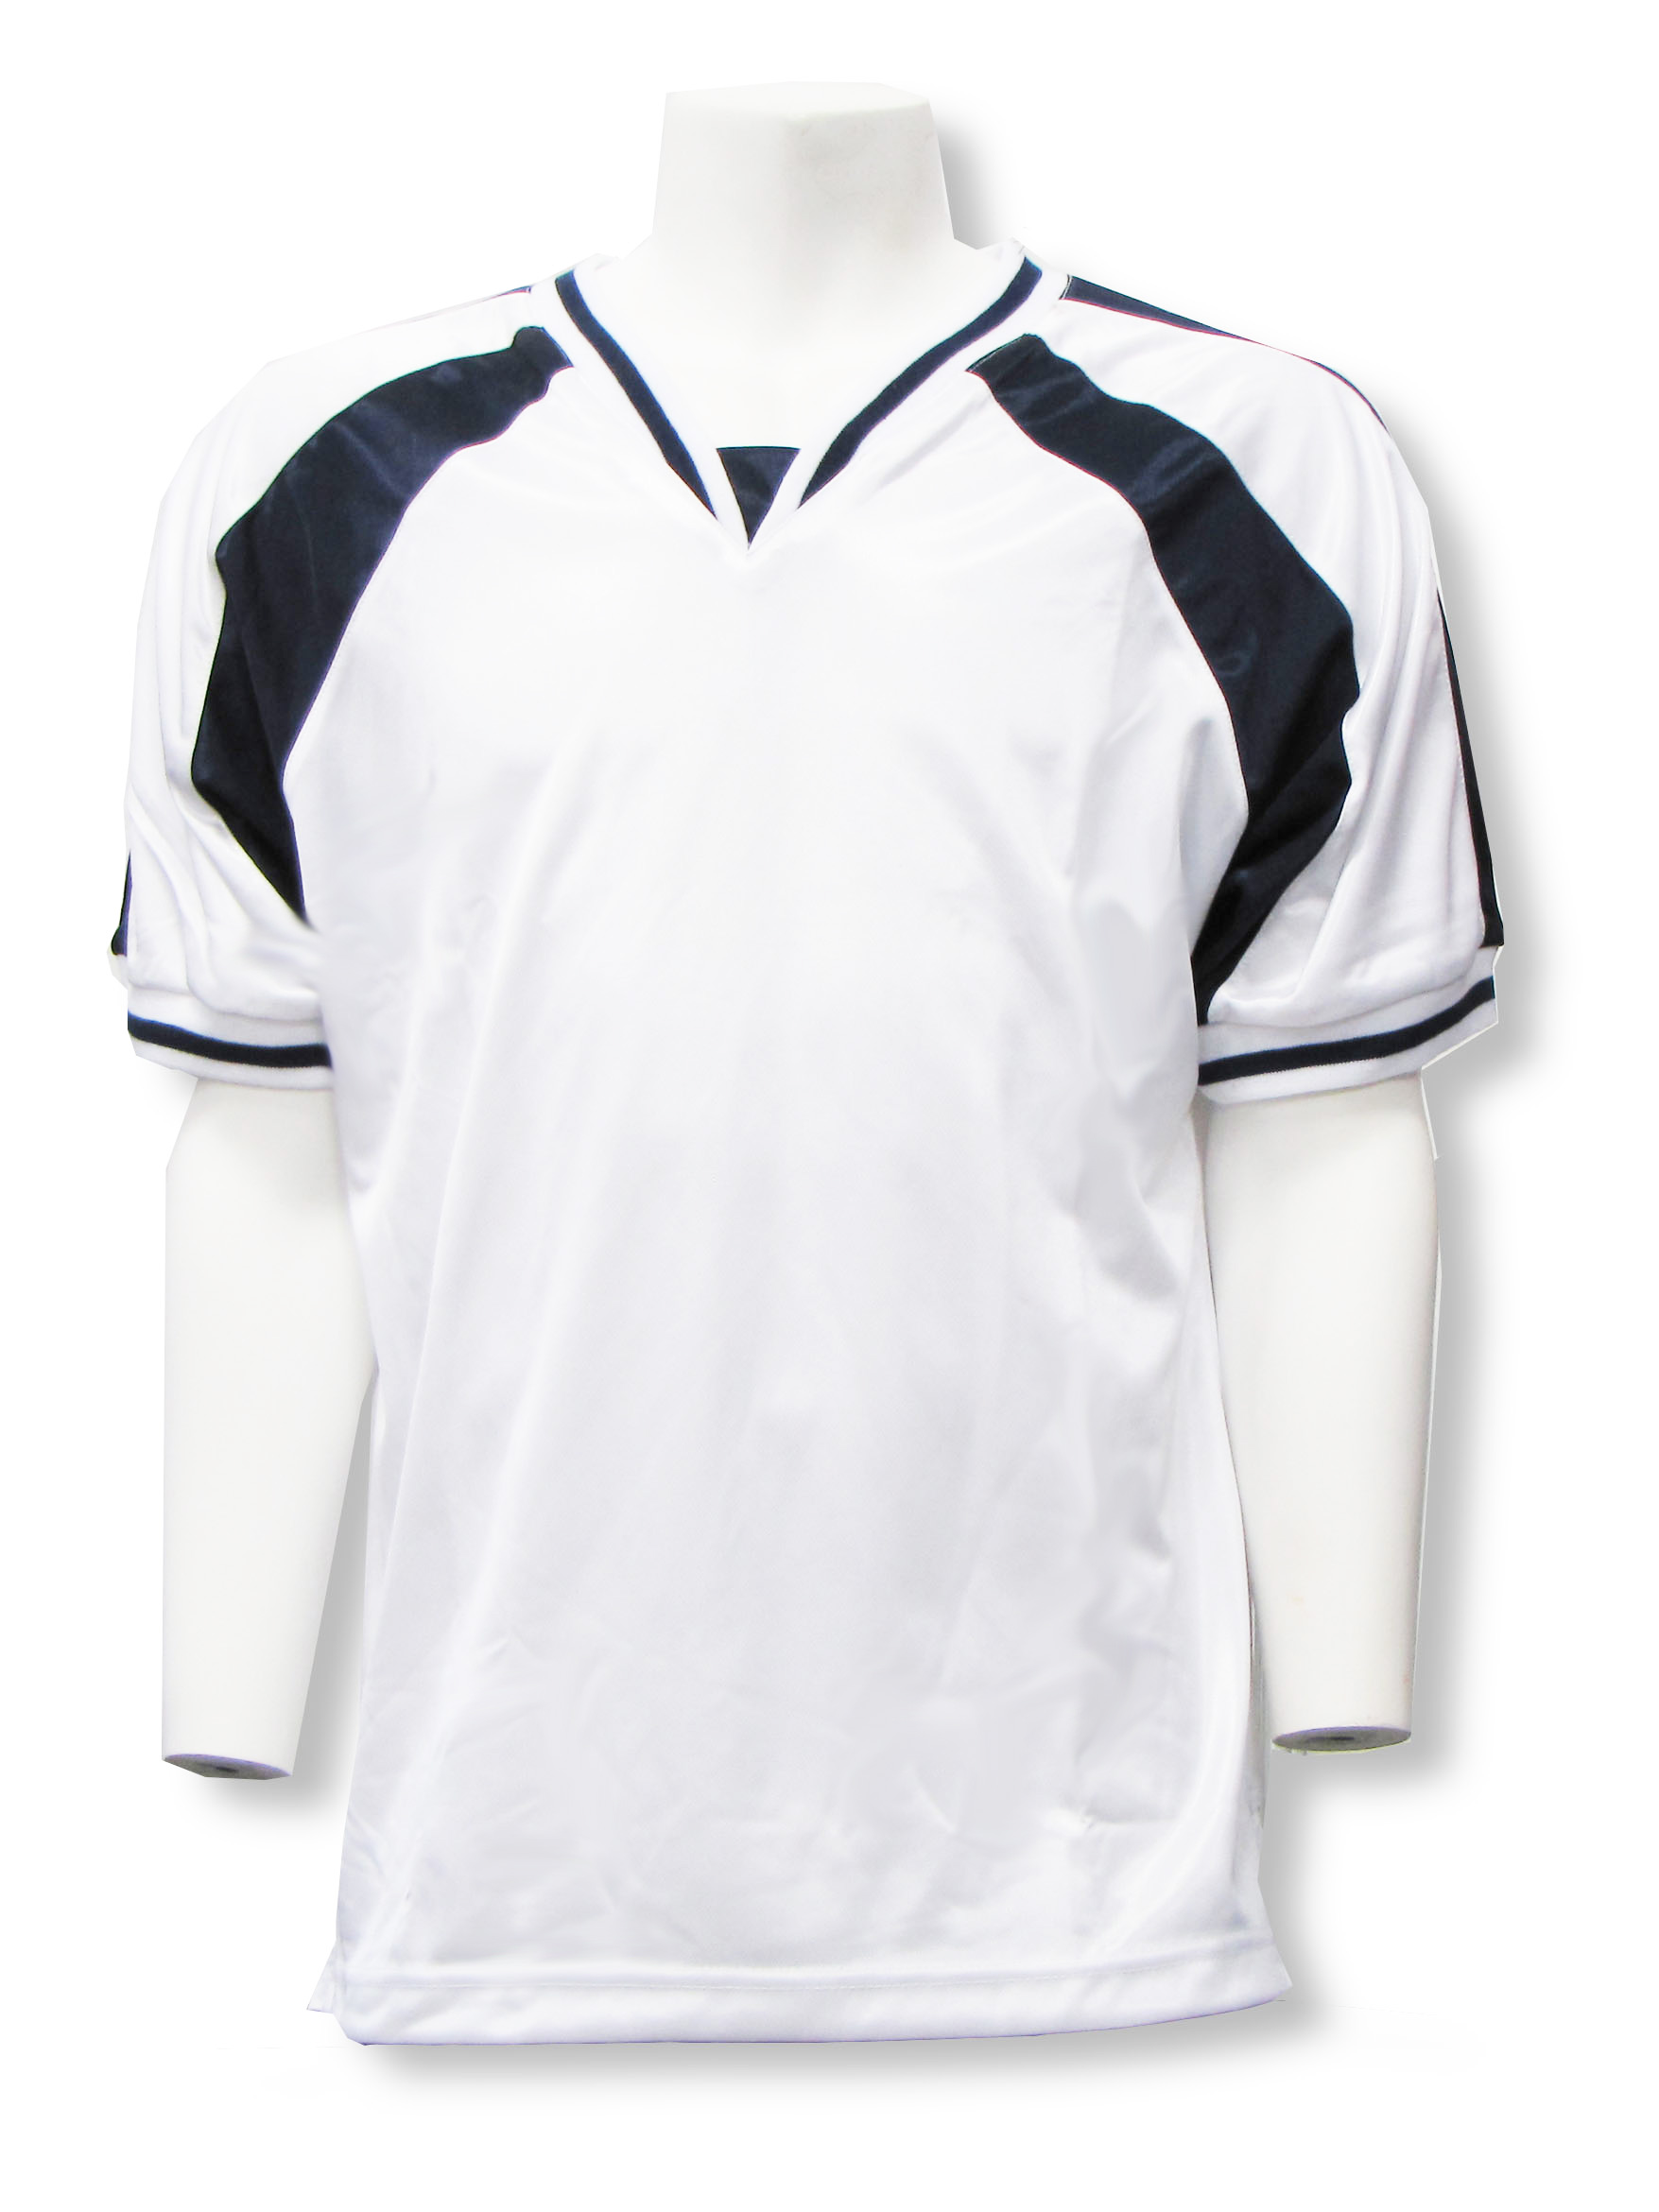 Spitfire soccer jersey in white/navy by Code Four Athletics